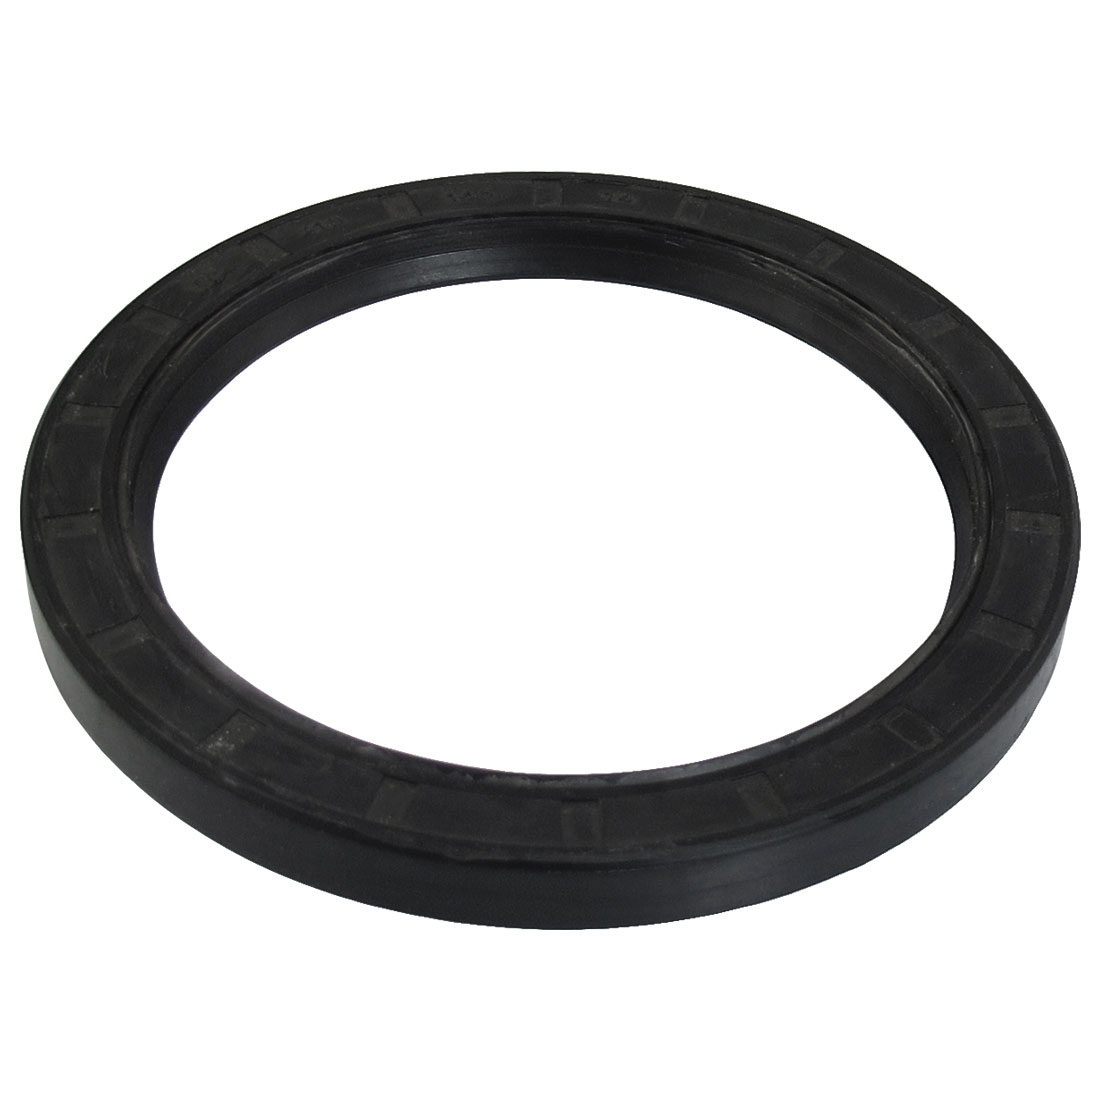 Black Nitrile Rubber Dual Lips Oil Shaft Seal TC 115mm x 145mm x 14mm